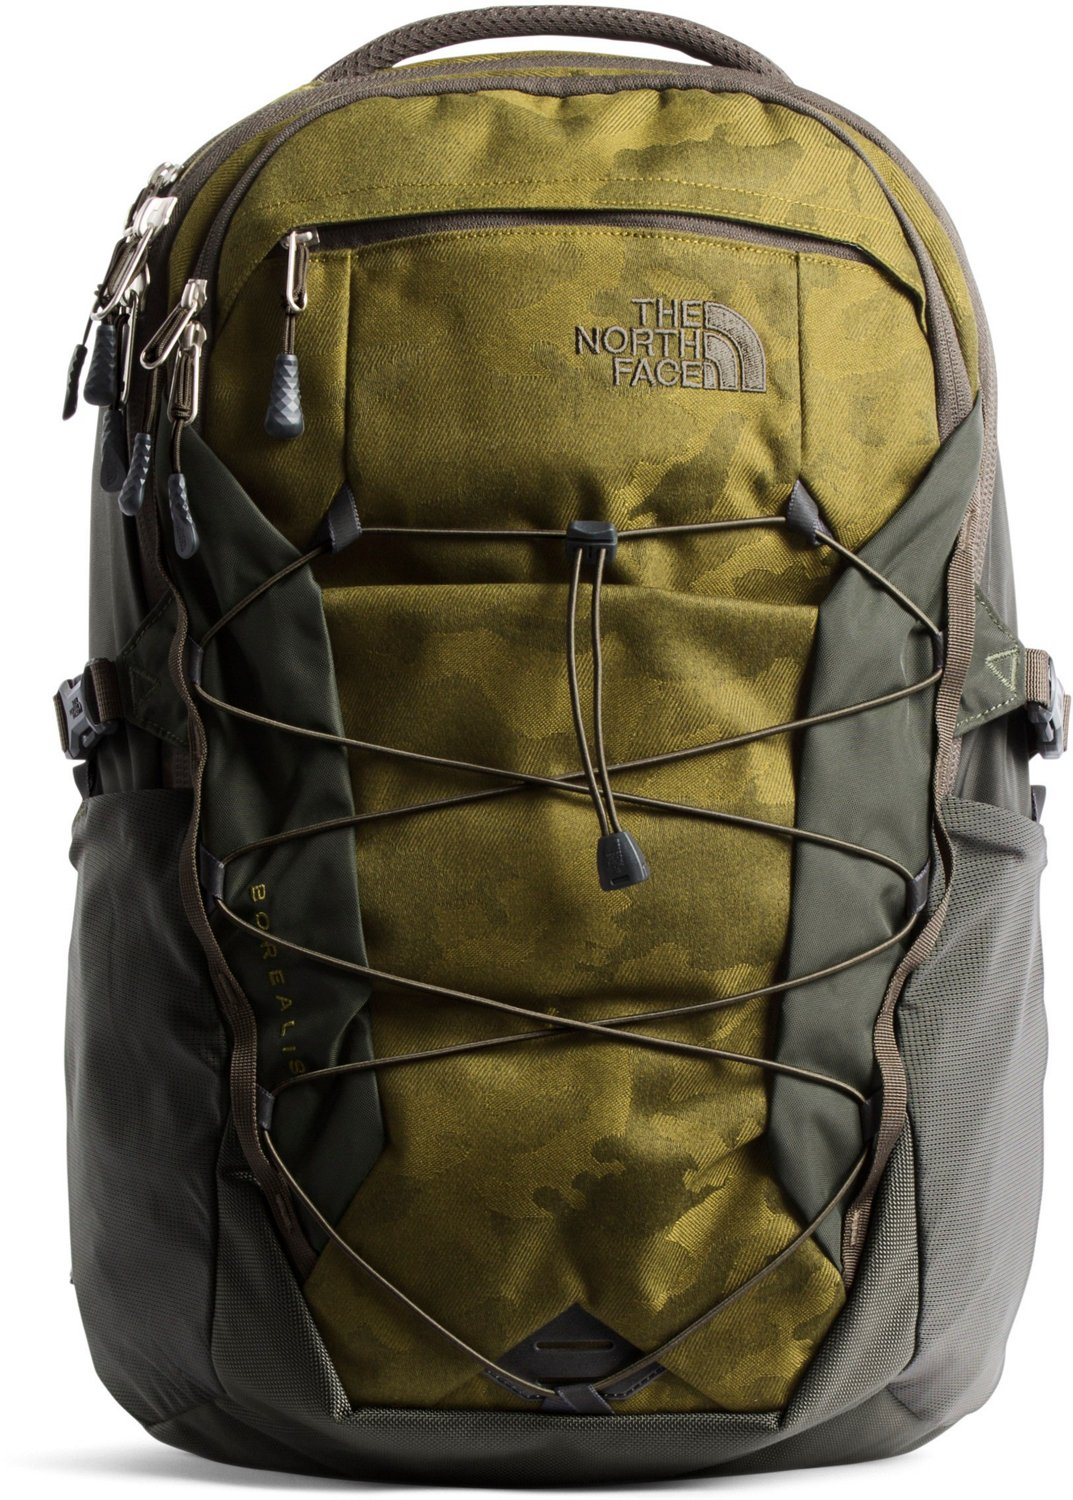 0a8f286bc91770 Display product reviews for The North Face Borealis Backpack